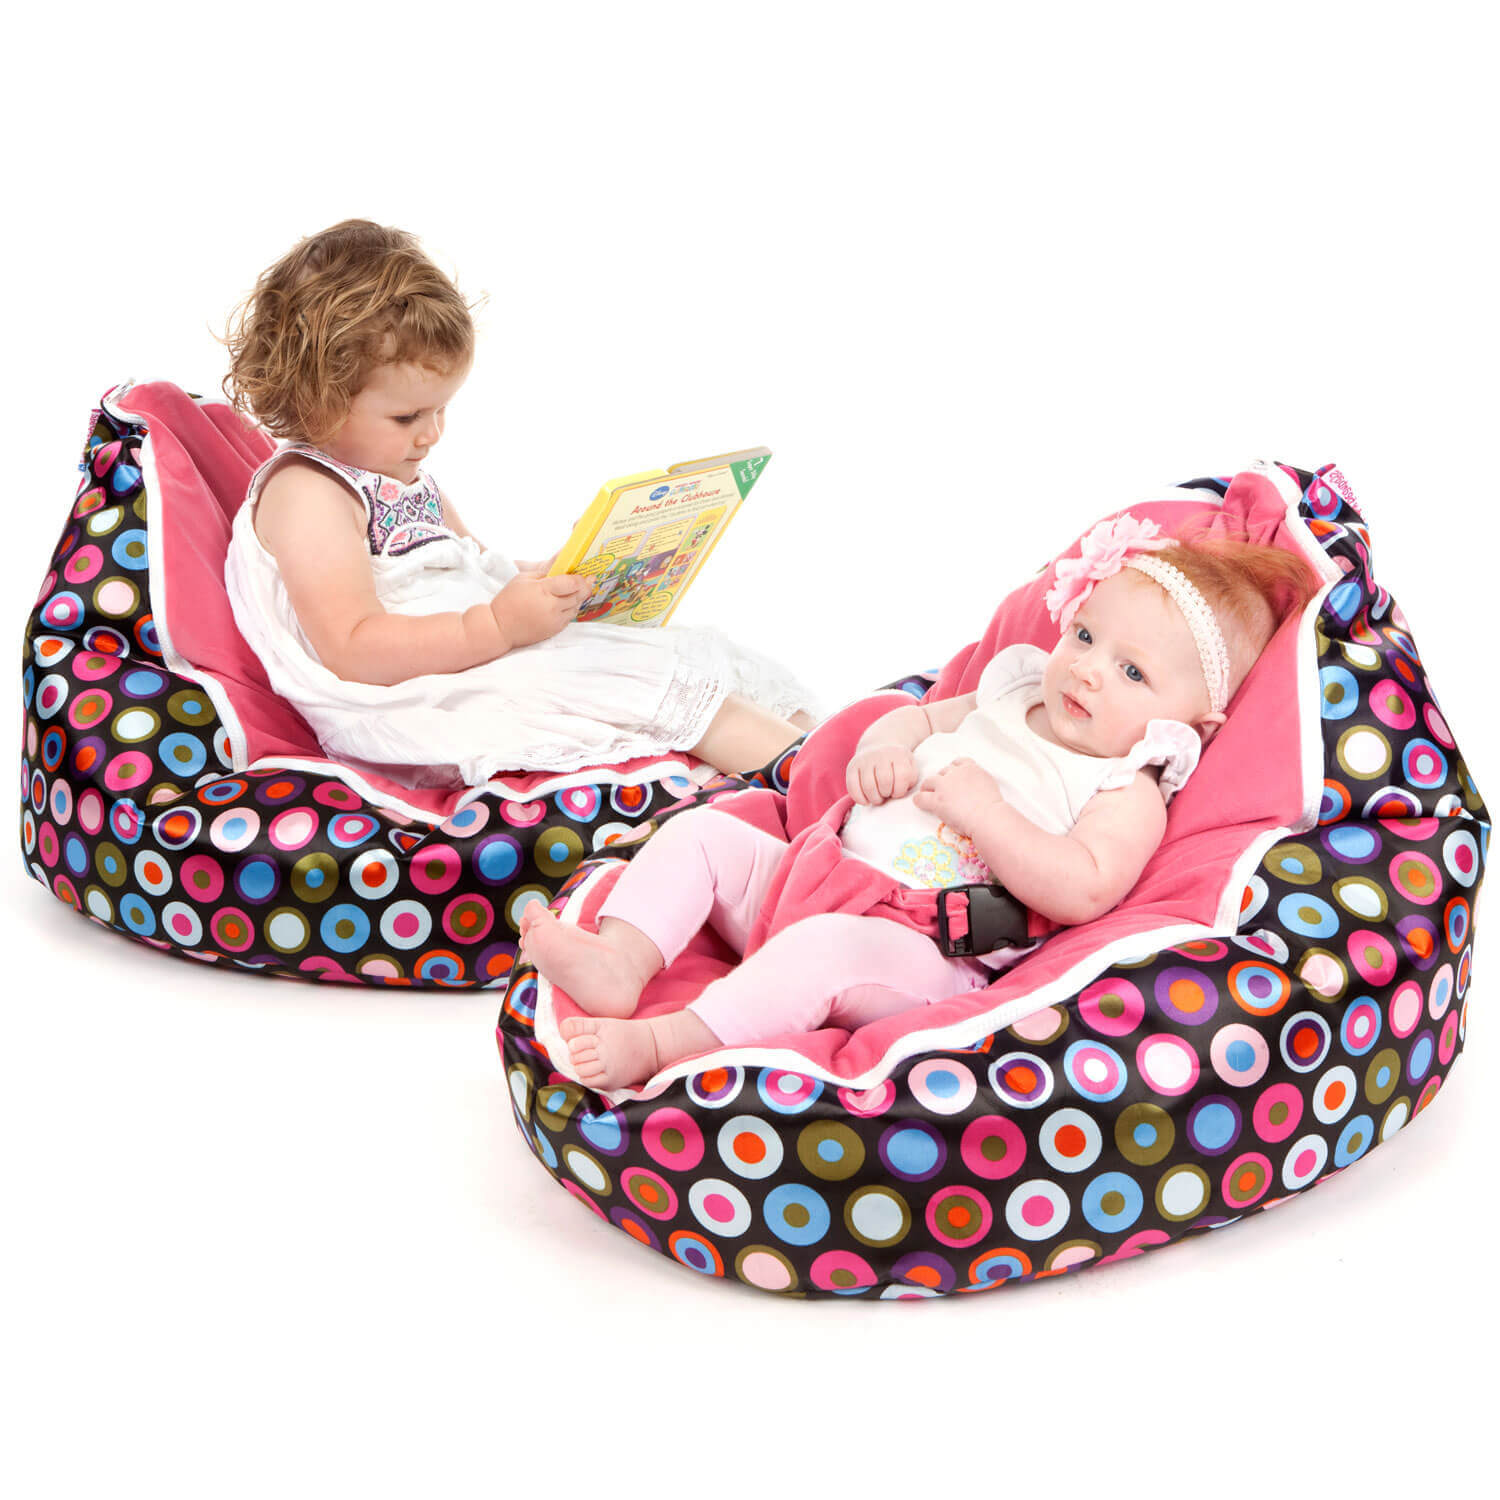 Disco Candy Incl Filling Free Delivery Bean Bags